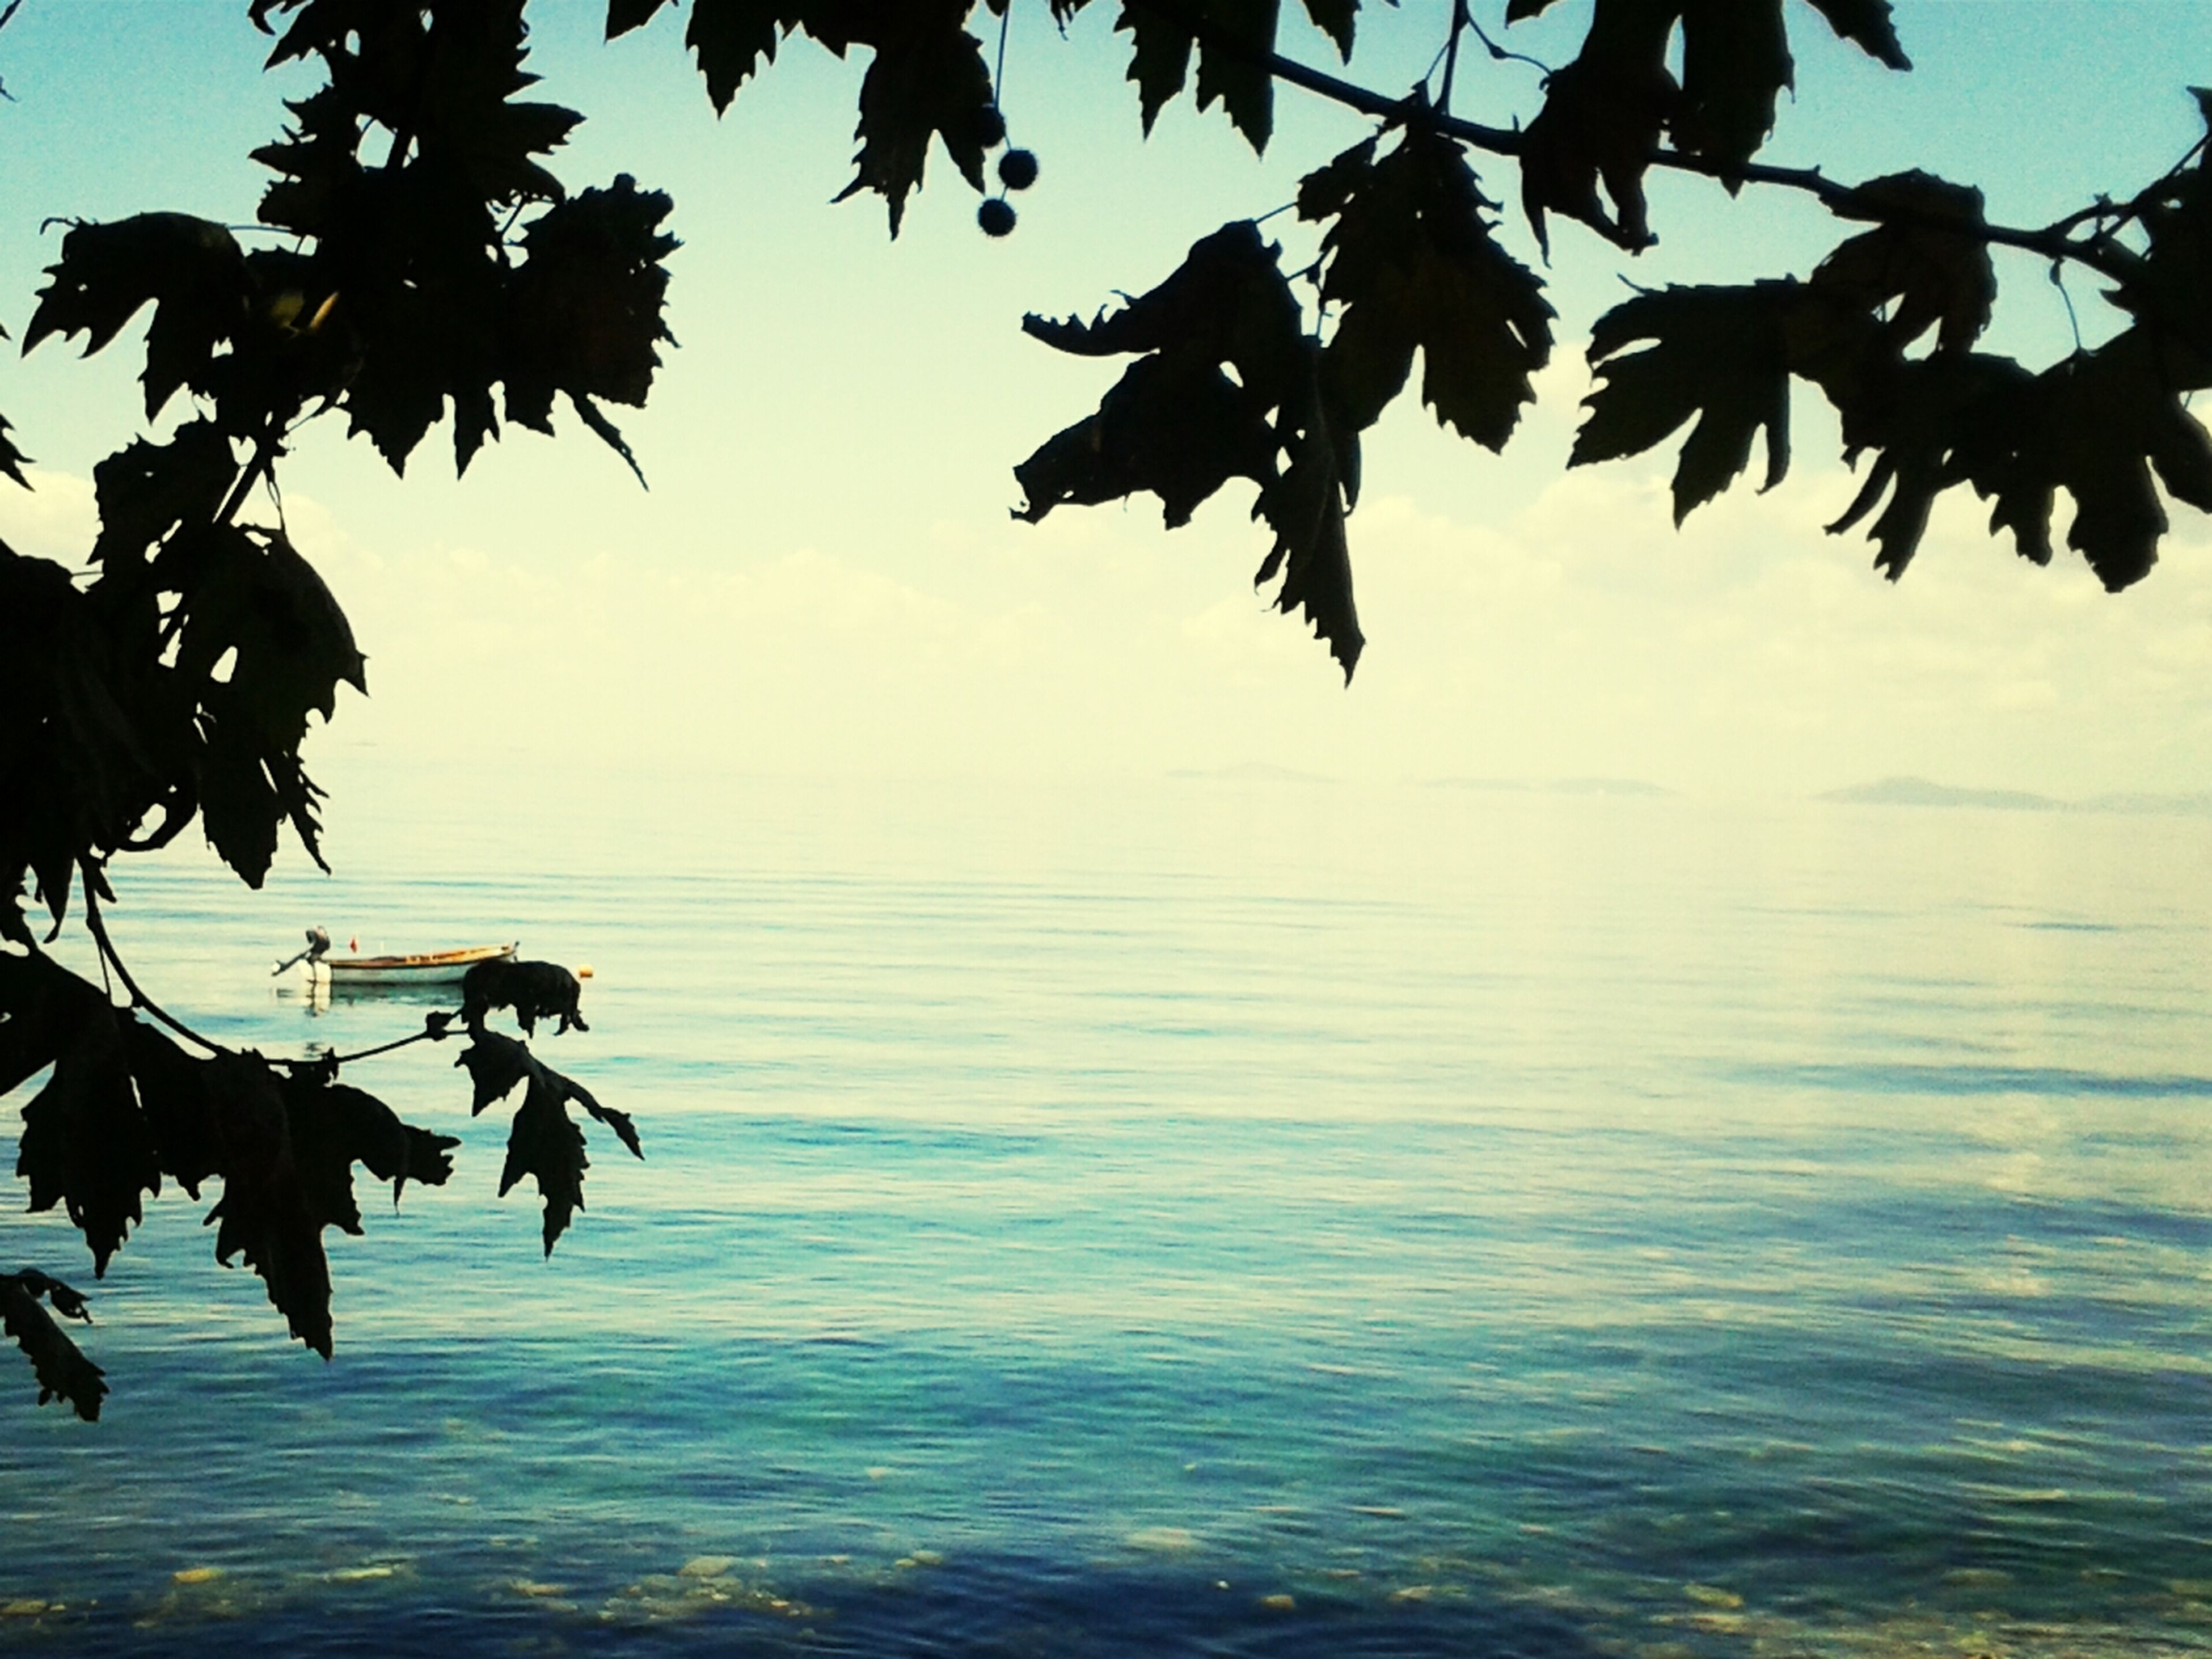 water, tranquility, waterfront, tree, sea, tranquil scene, beauty in nature, scenics, branch, sky, nature, horizon over water, rippled, lake, leaf, idyllic, blue, clear sky, outdoors, reflection